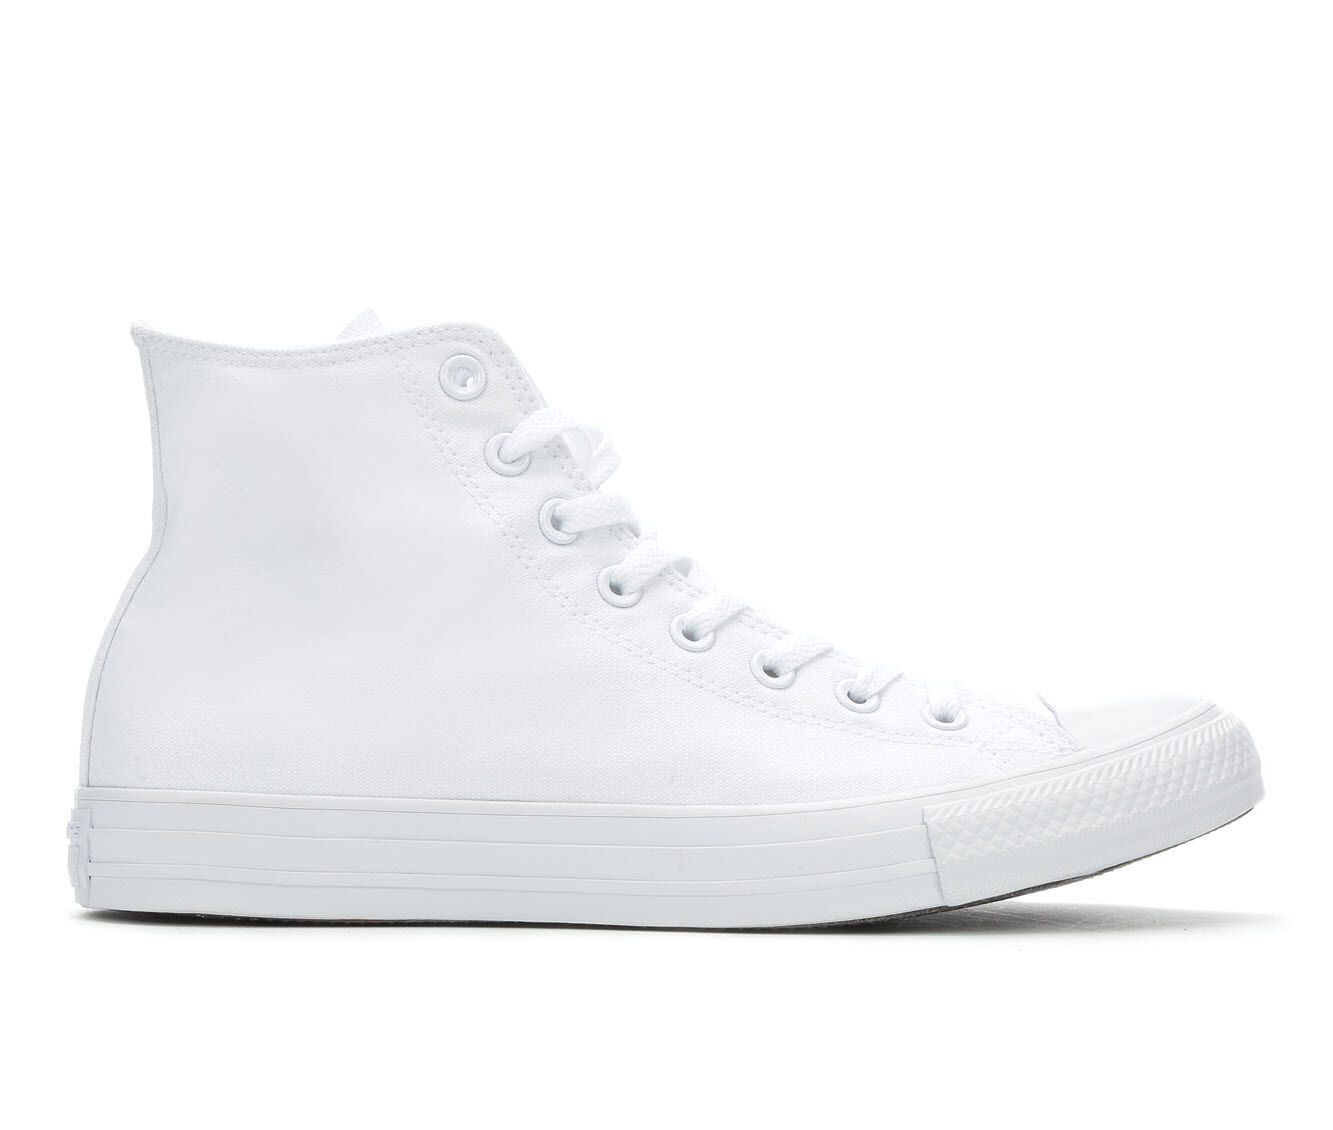 Adults' Converse Chuck Taylor All Star Canvas Hi High Top Sneakers White Mono